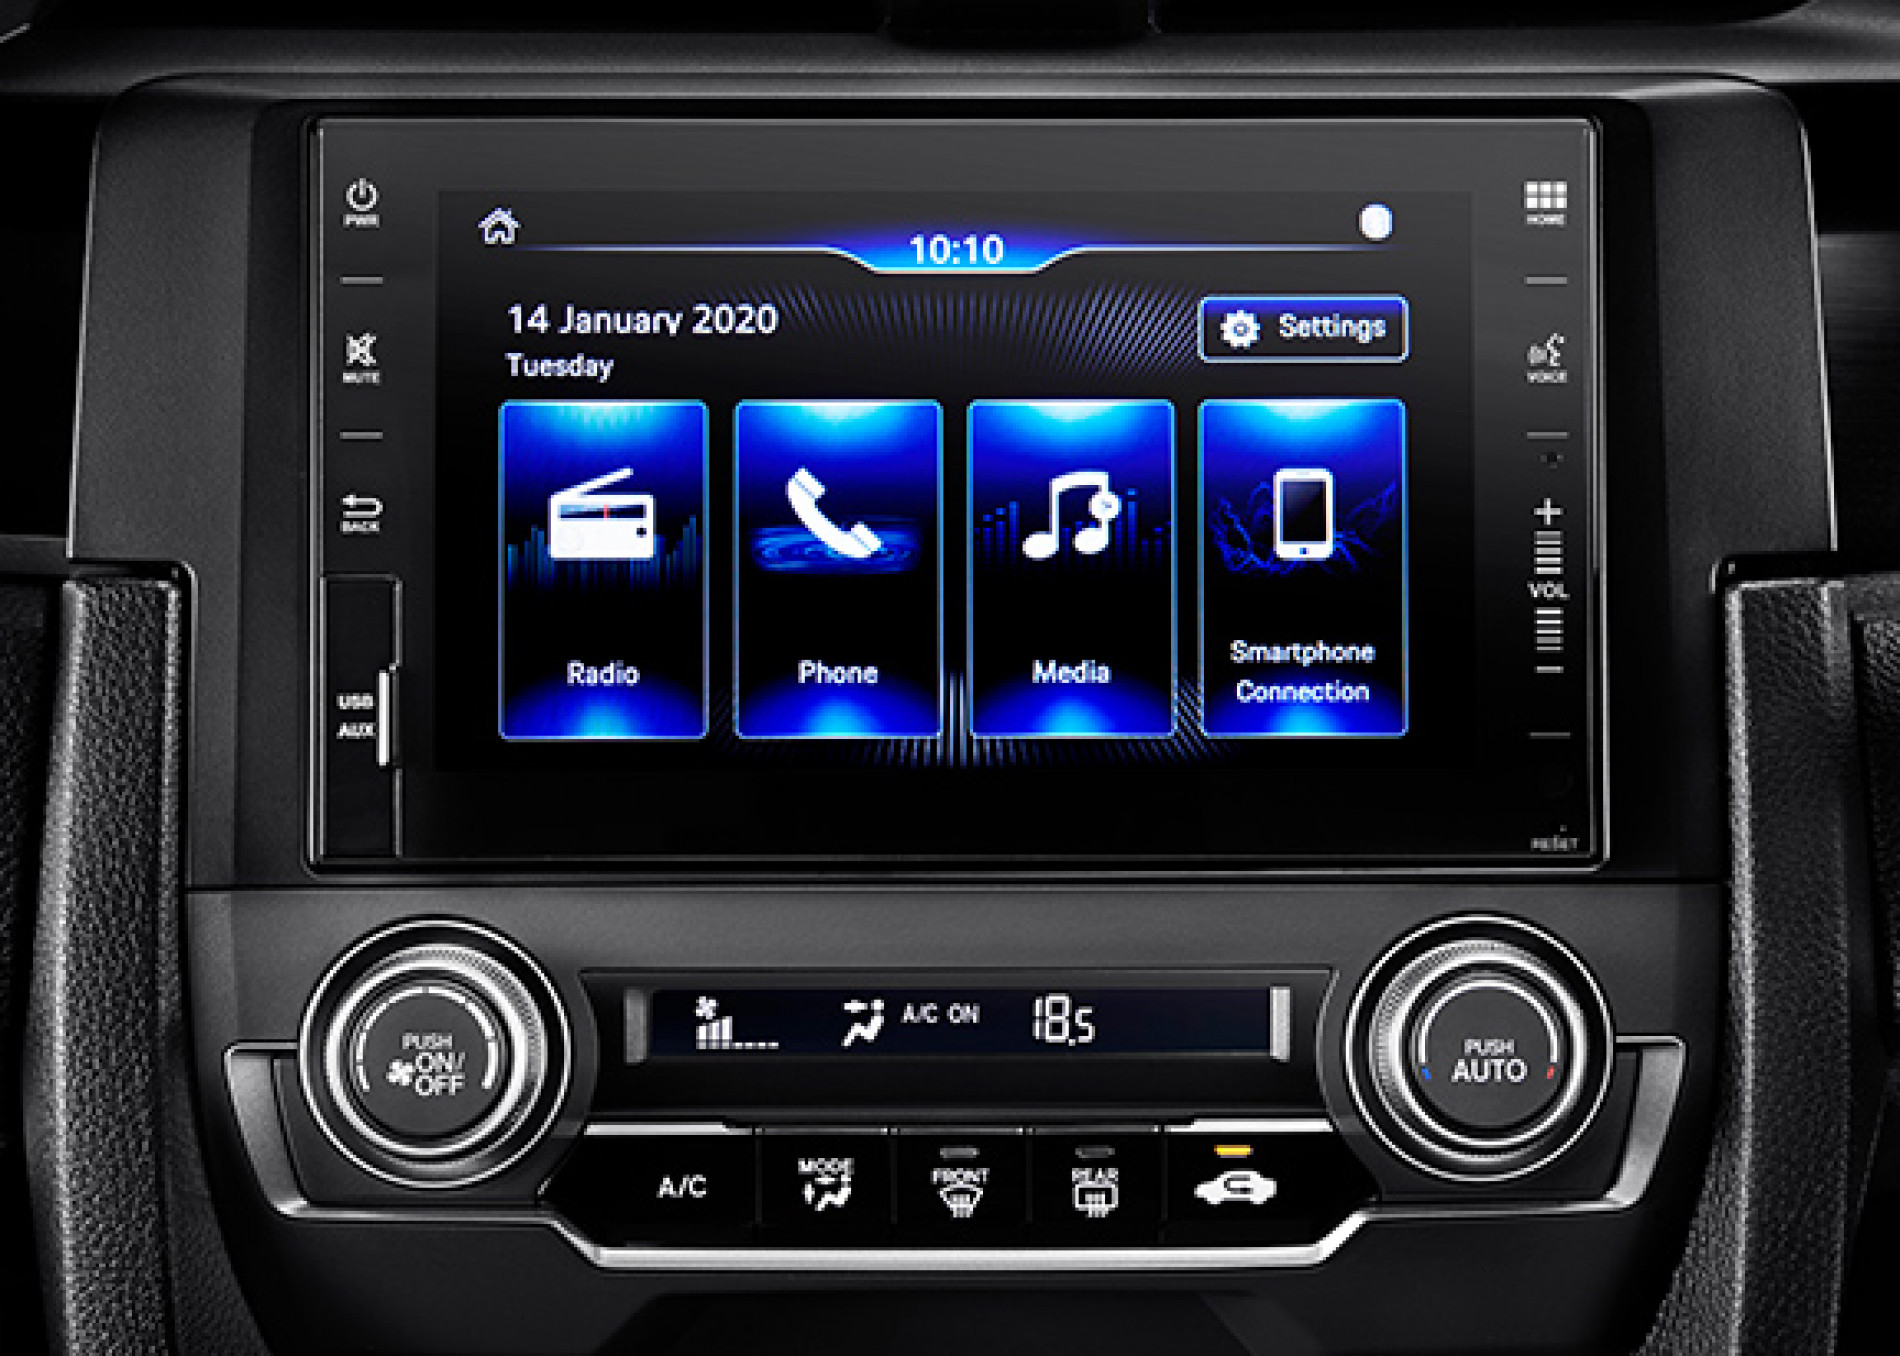 """NEW-7""""-CAPACITIVE-TOUCHSCREEN-DISPLAY-AUDIO-AM-FM-RADIO-AUX-IN-PORT-USB-PORT-SMARTPHONE-CONNECTION-BLUETOOTH"""